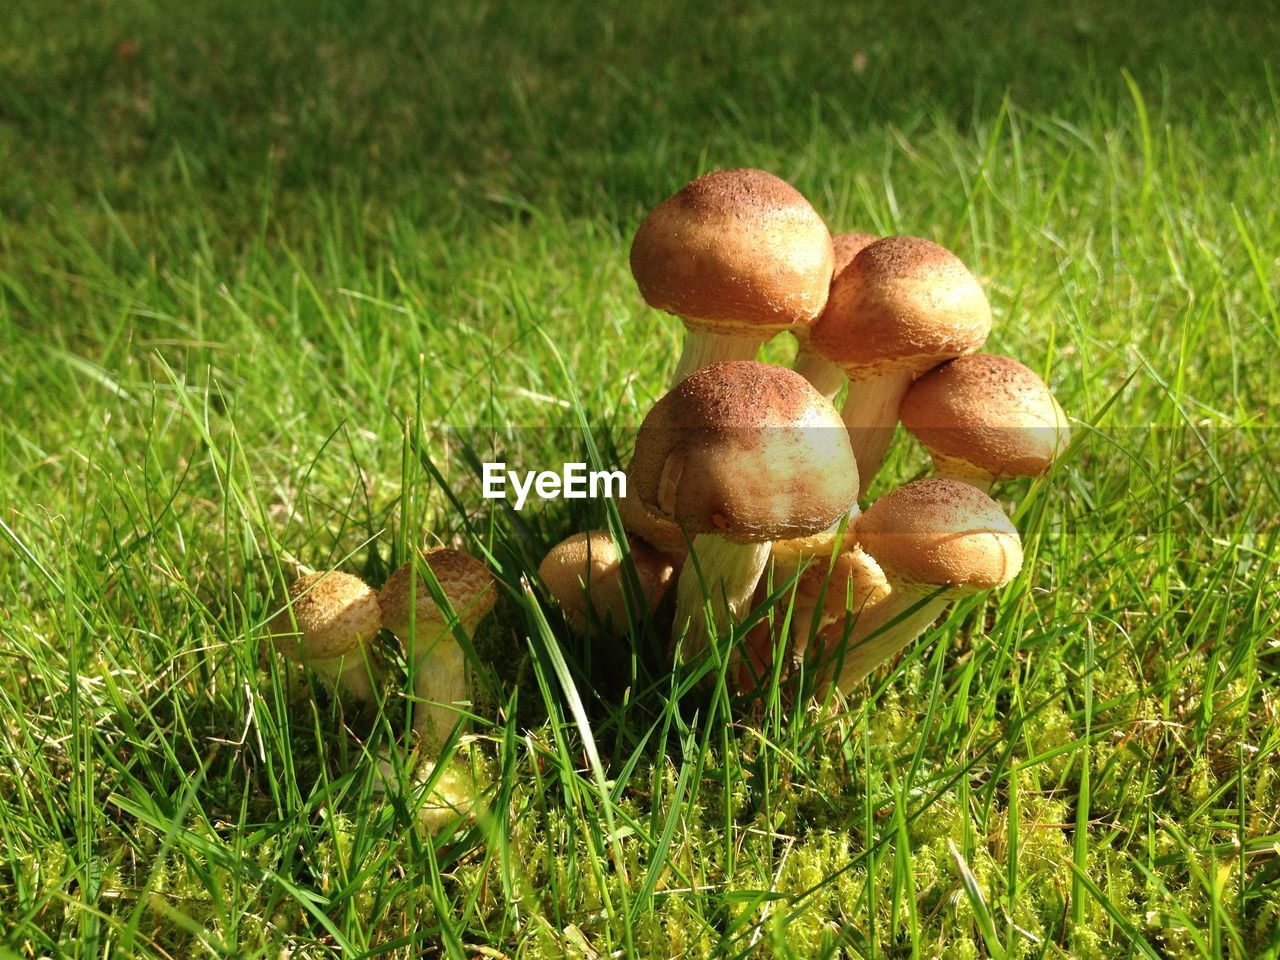 grass, growth, mushroom, nature, field, fungus, toadstool, outdoors, no people, green color, day, freshness, beauty in nature, easter, healthy eating, food, fragility, close-up, fly agaric